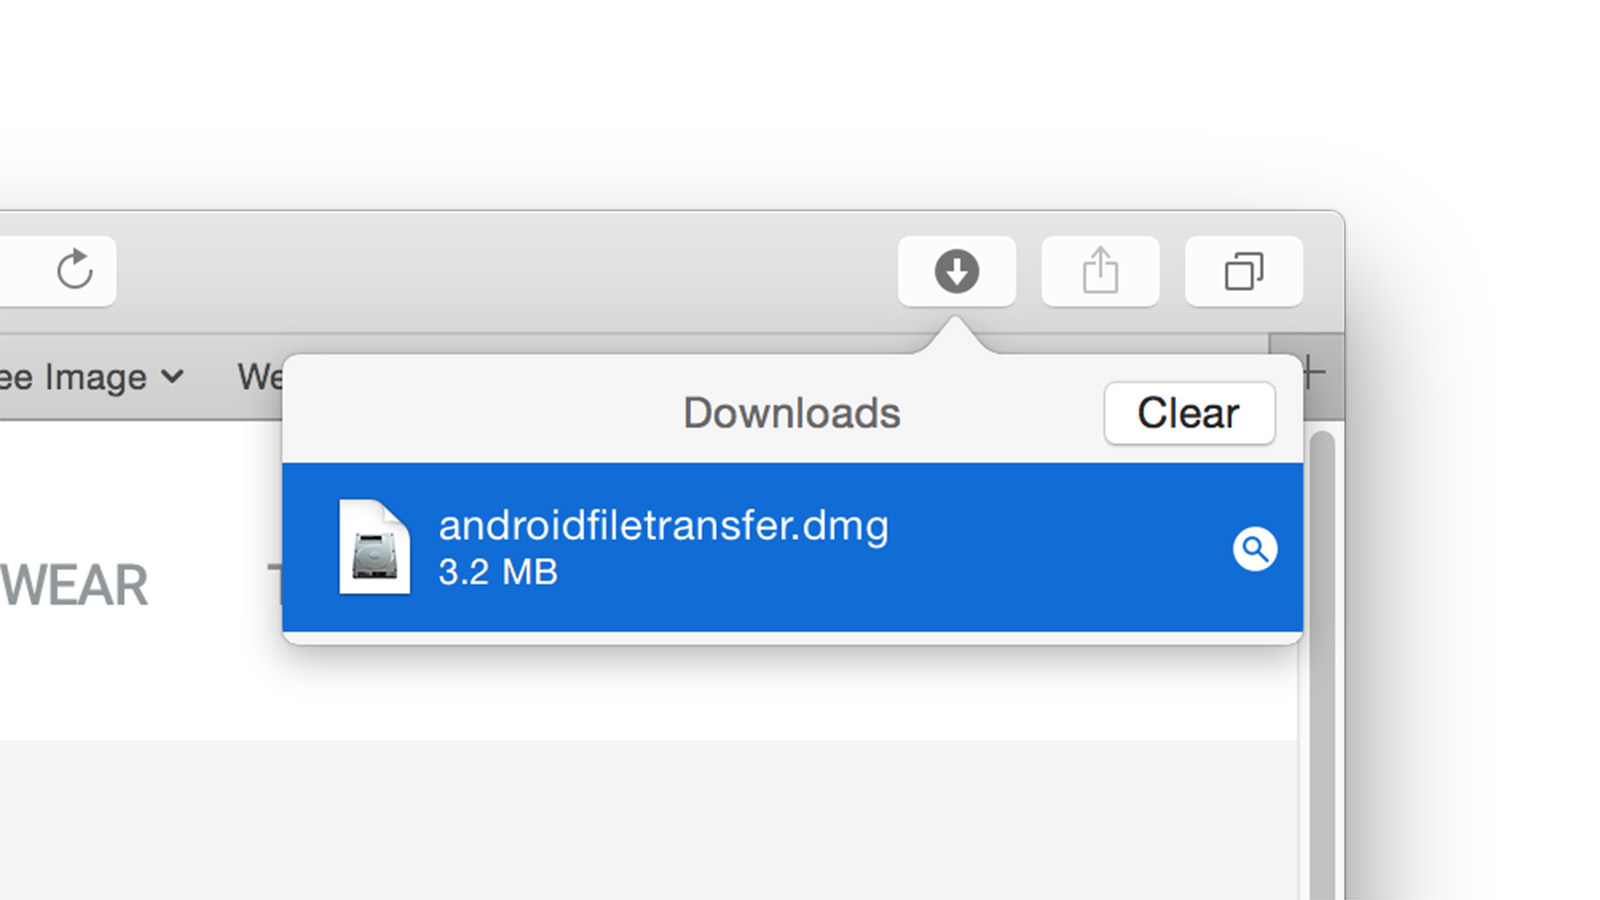 Android File Transfer dmgファイル